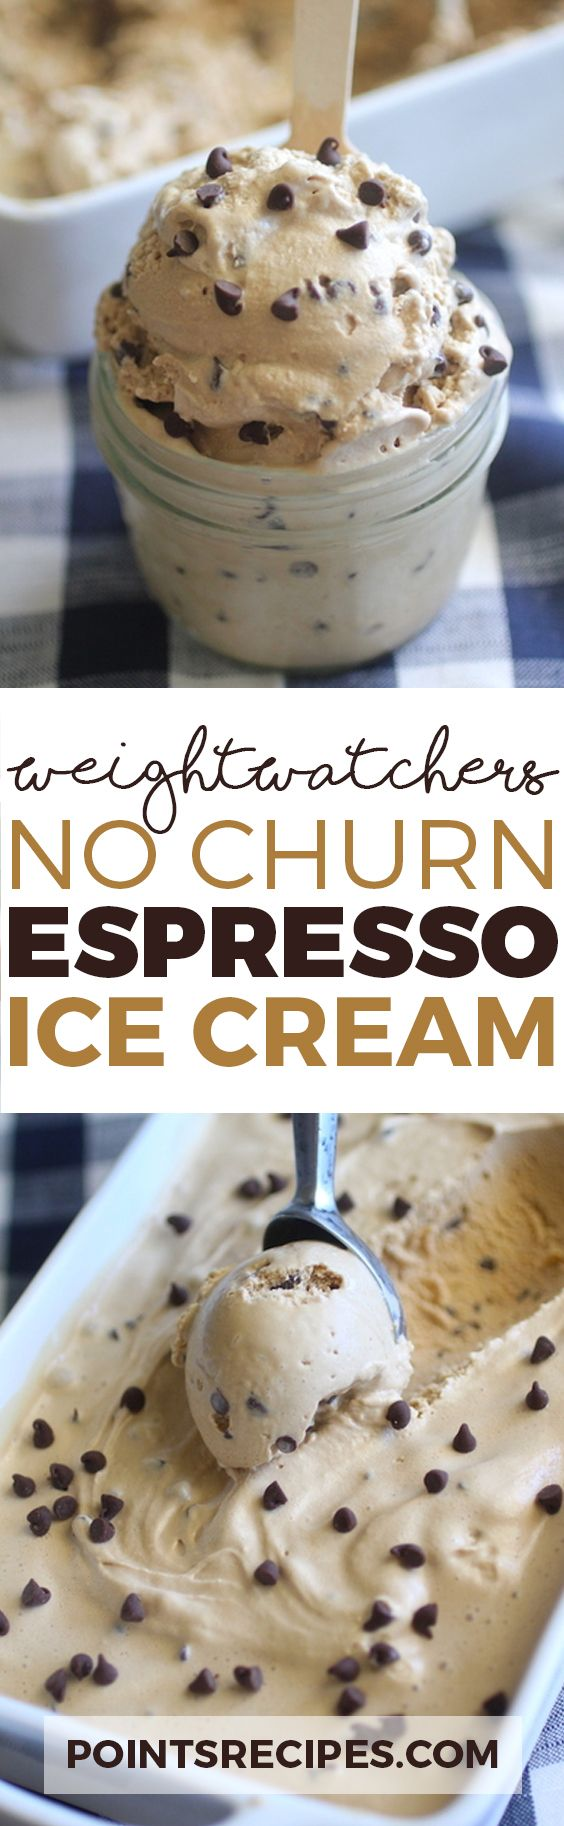 No Churn Espresso Ice Cream (Weight Watchers Smartpoints)